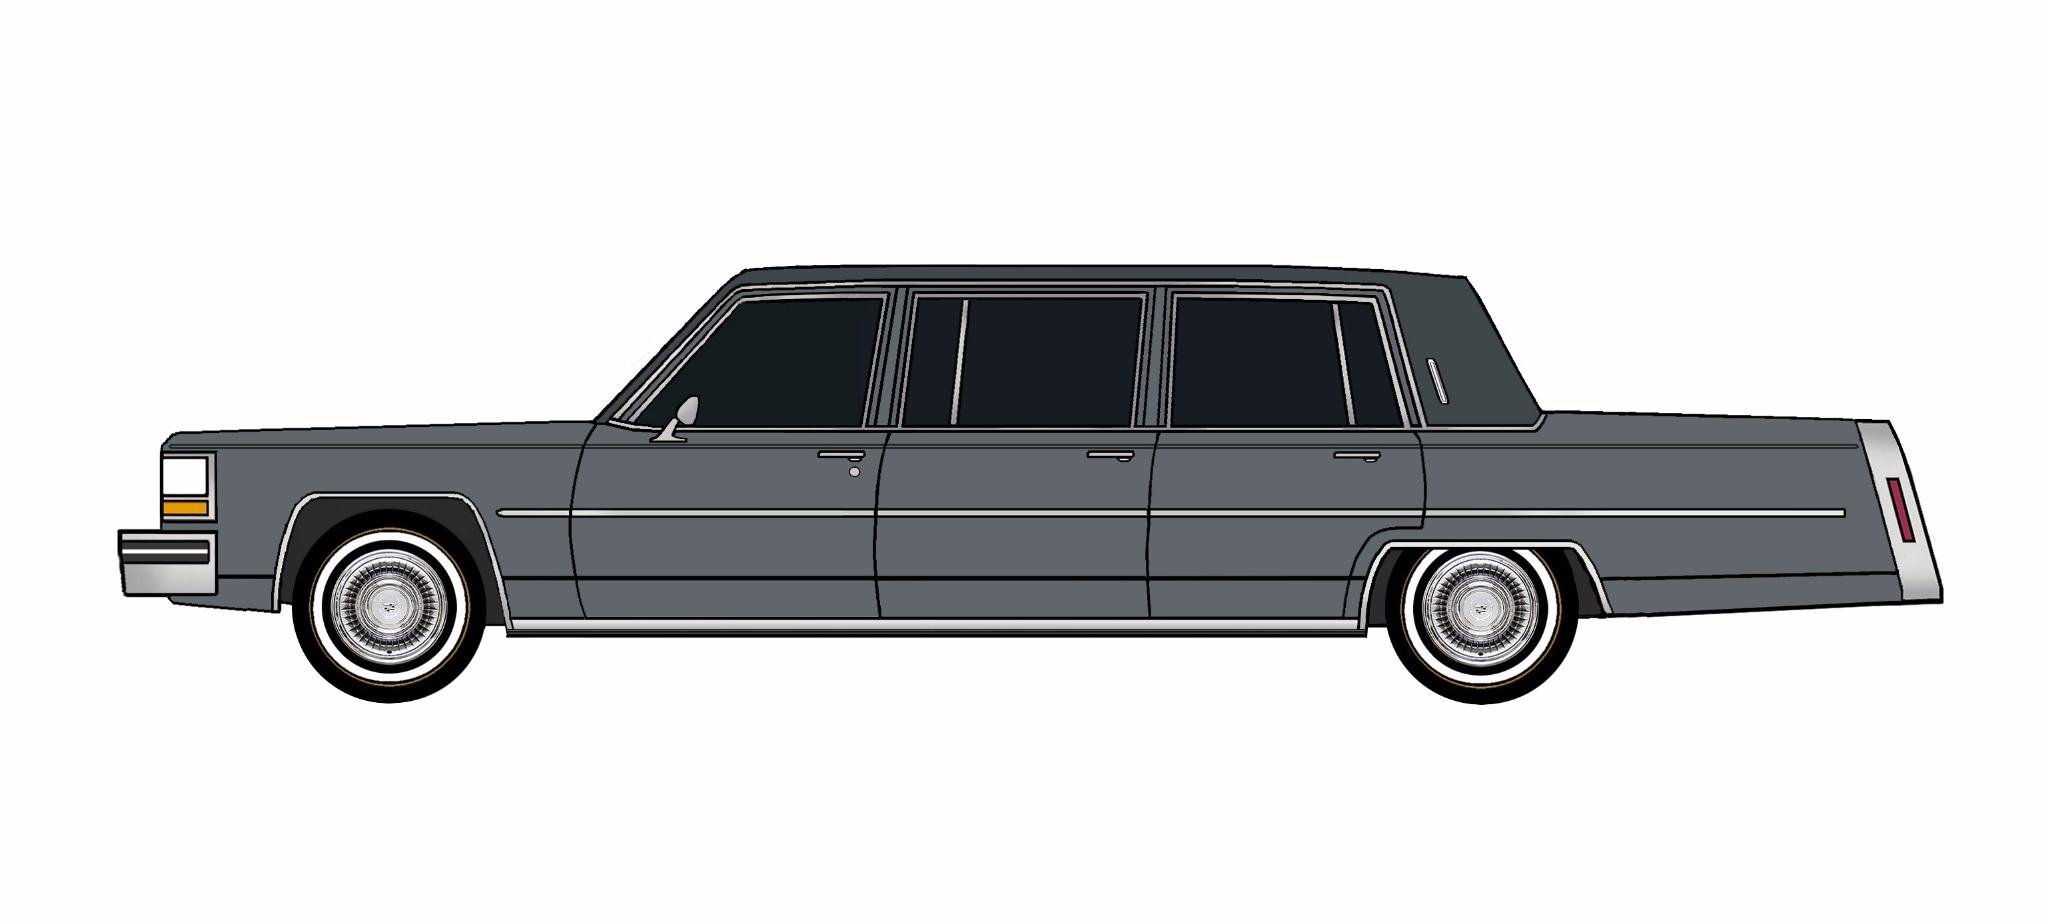 1980 Cadillac Fleetwood Funeral Limo CHARCOAL